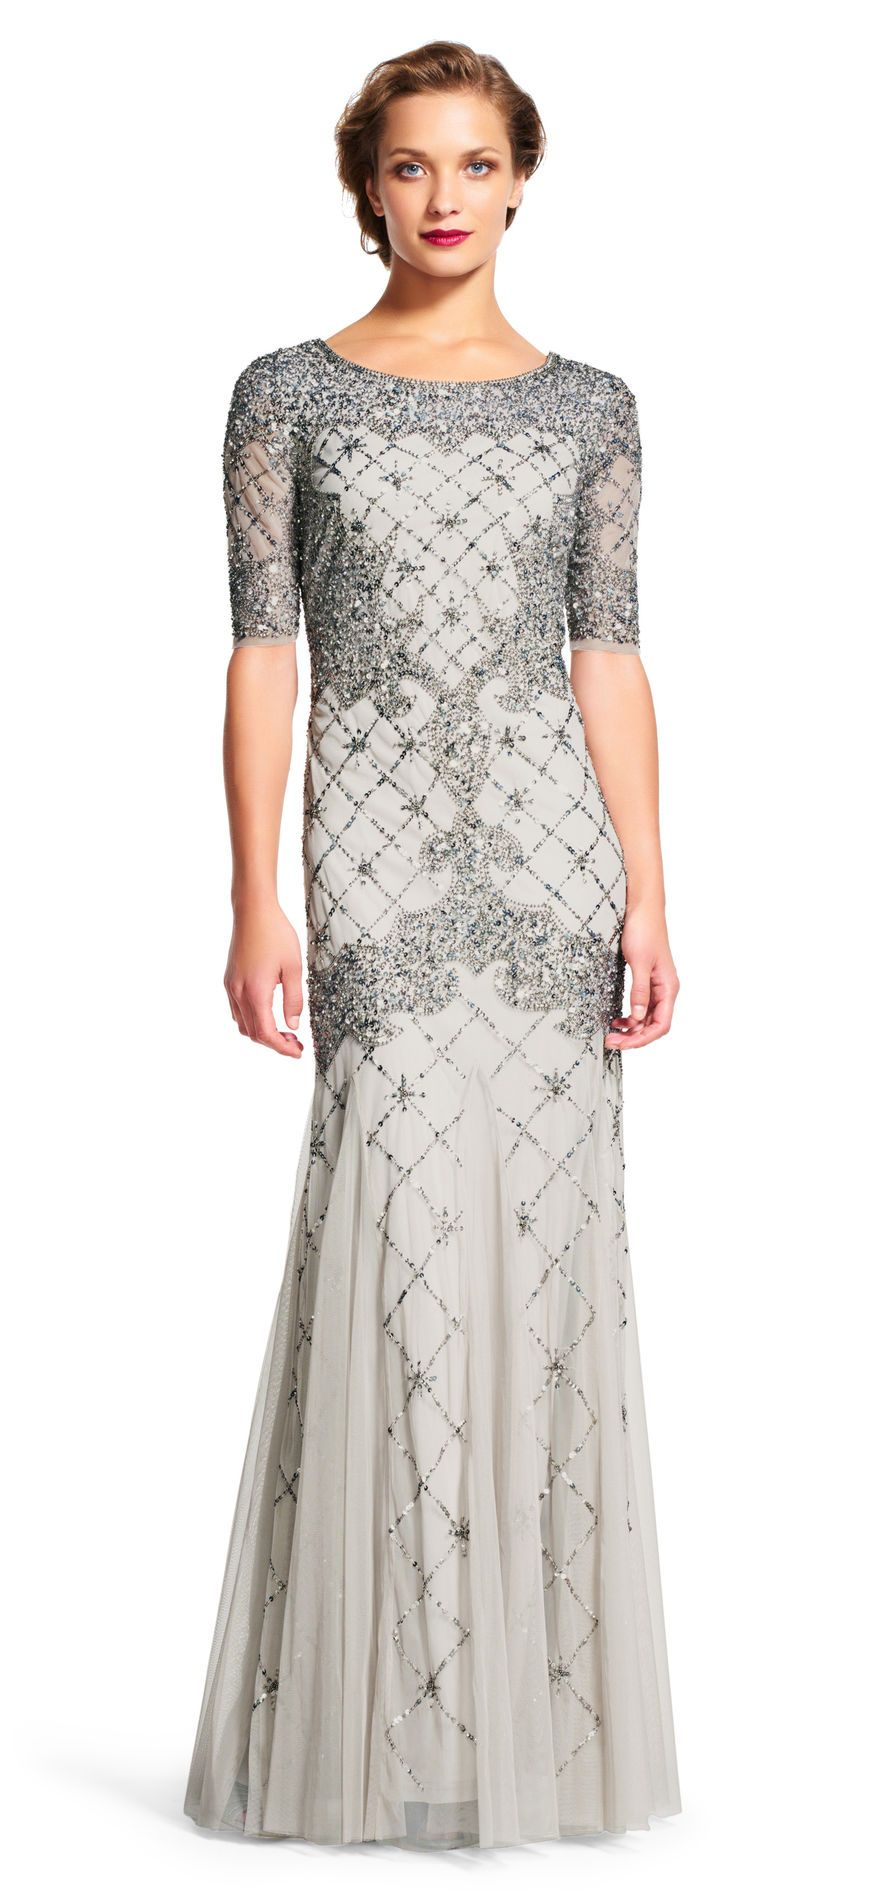 Adrianna Papell   Fully Beaded Godet Gown with Sheer Sleeves ...